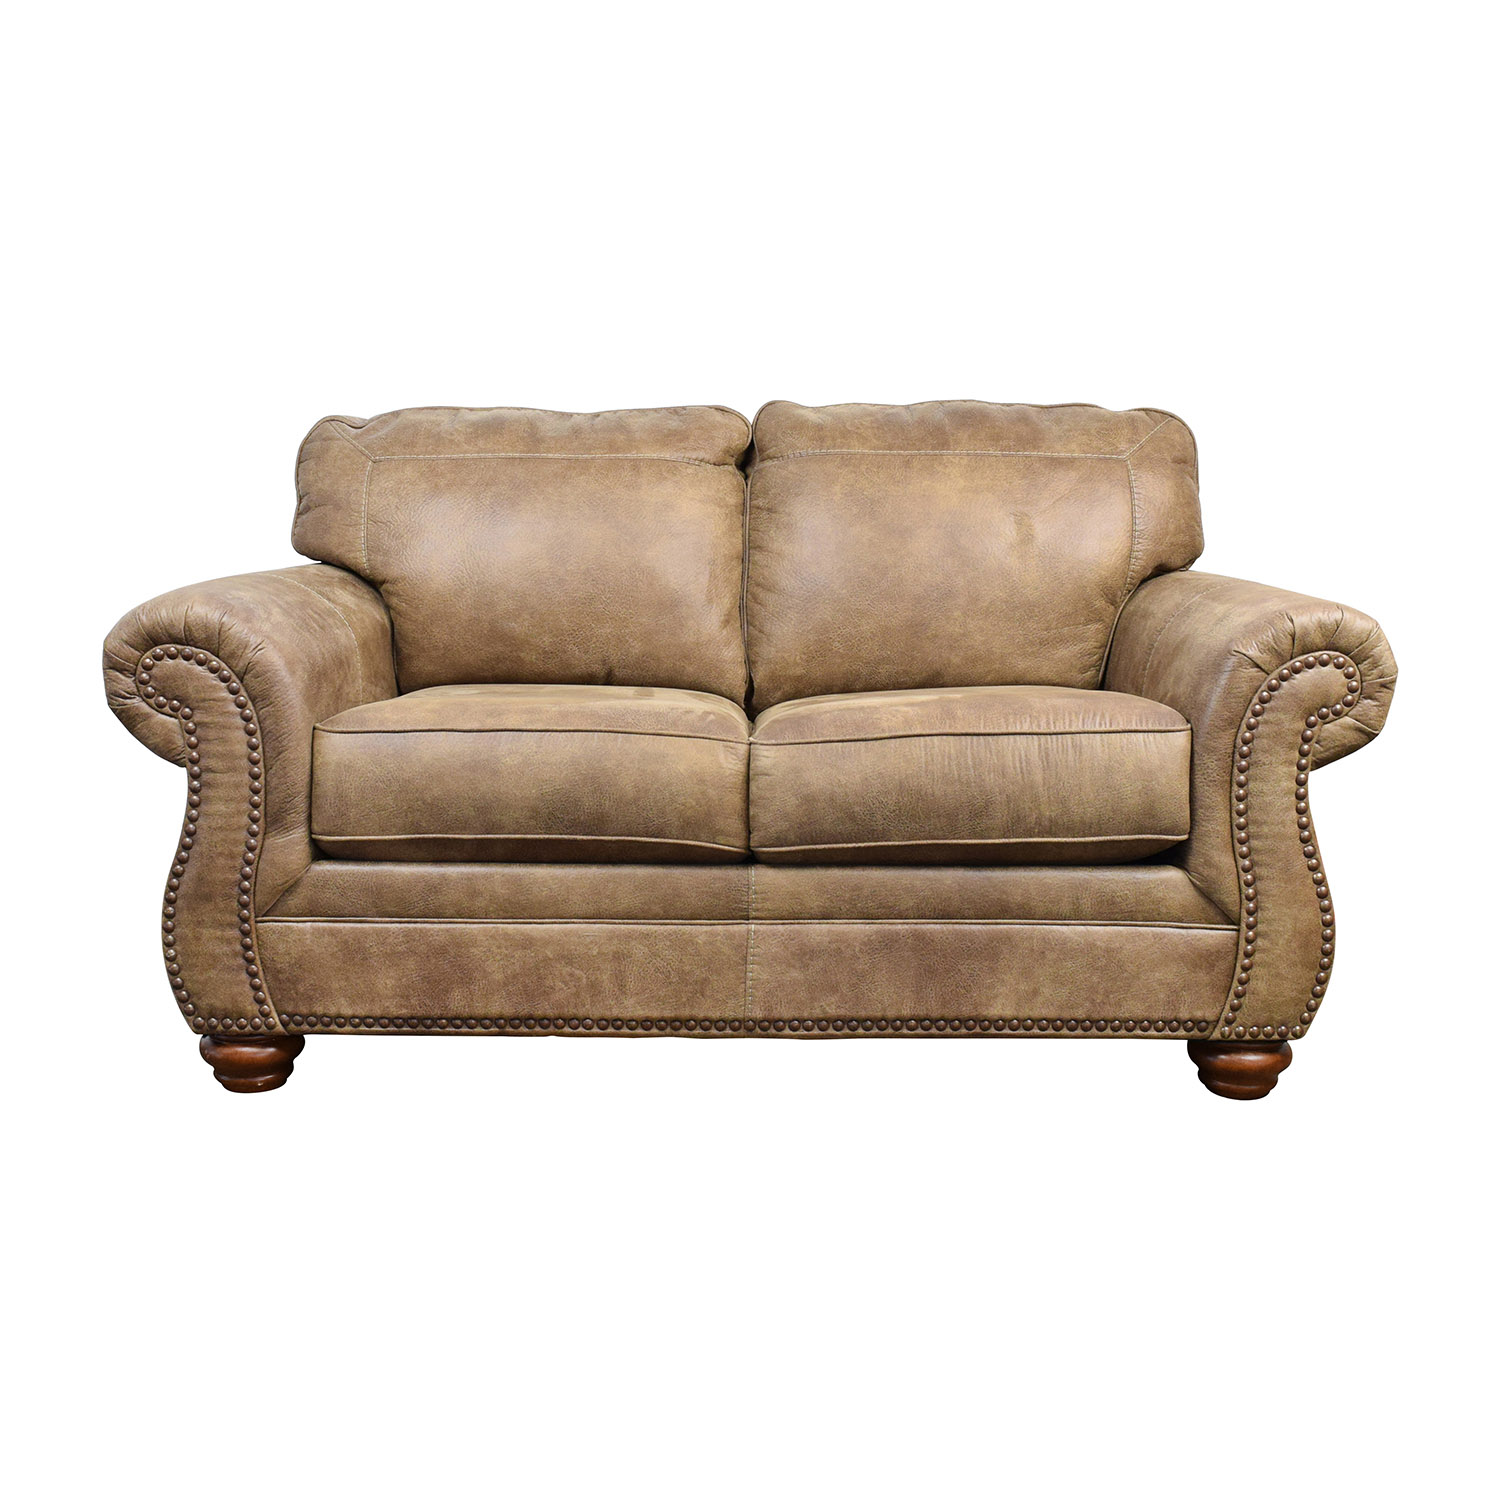 Terrific 57 Off Ashley Furniture Signature Design By Ashley Tallow Faux Leather Loveseat Sofas Dailytribune Chair Design For Home Dailytribuneorg